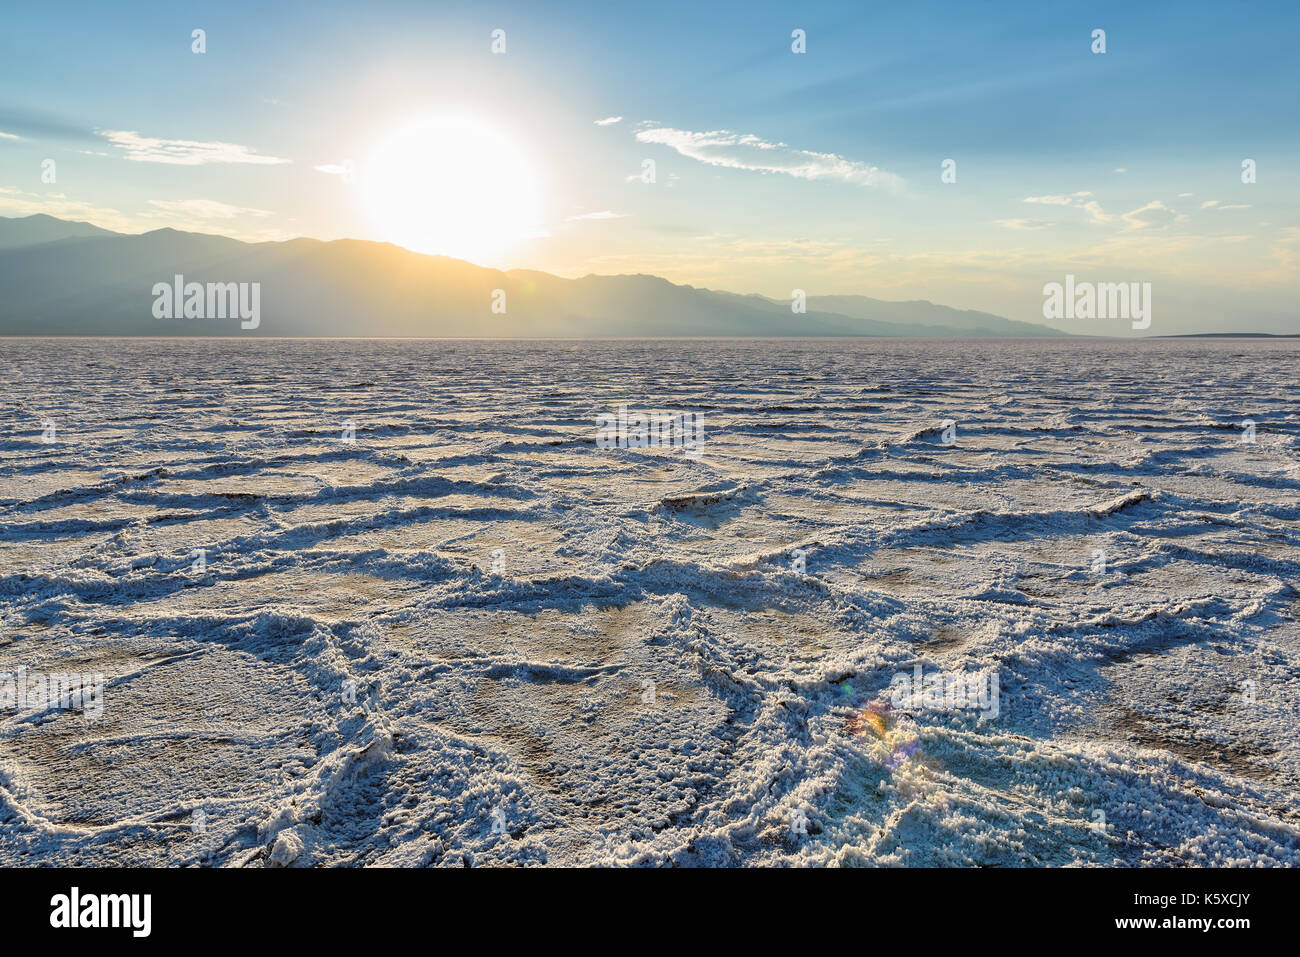 Death Valley National Park, Salt Badwater at sunset, California. - Stock Image